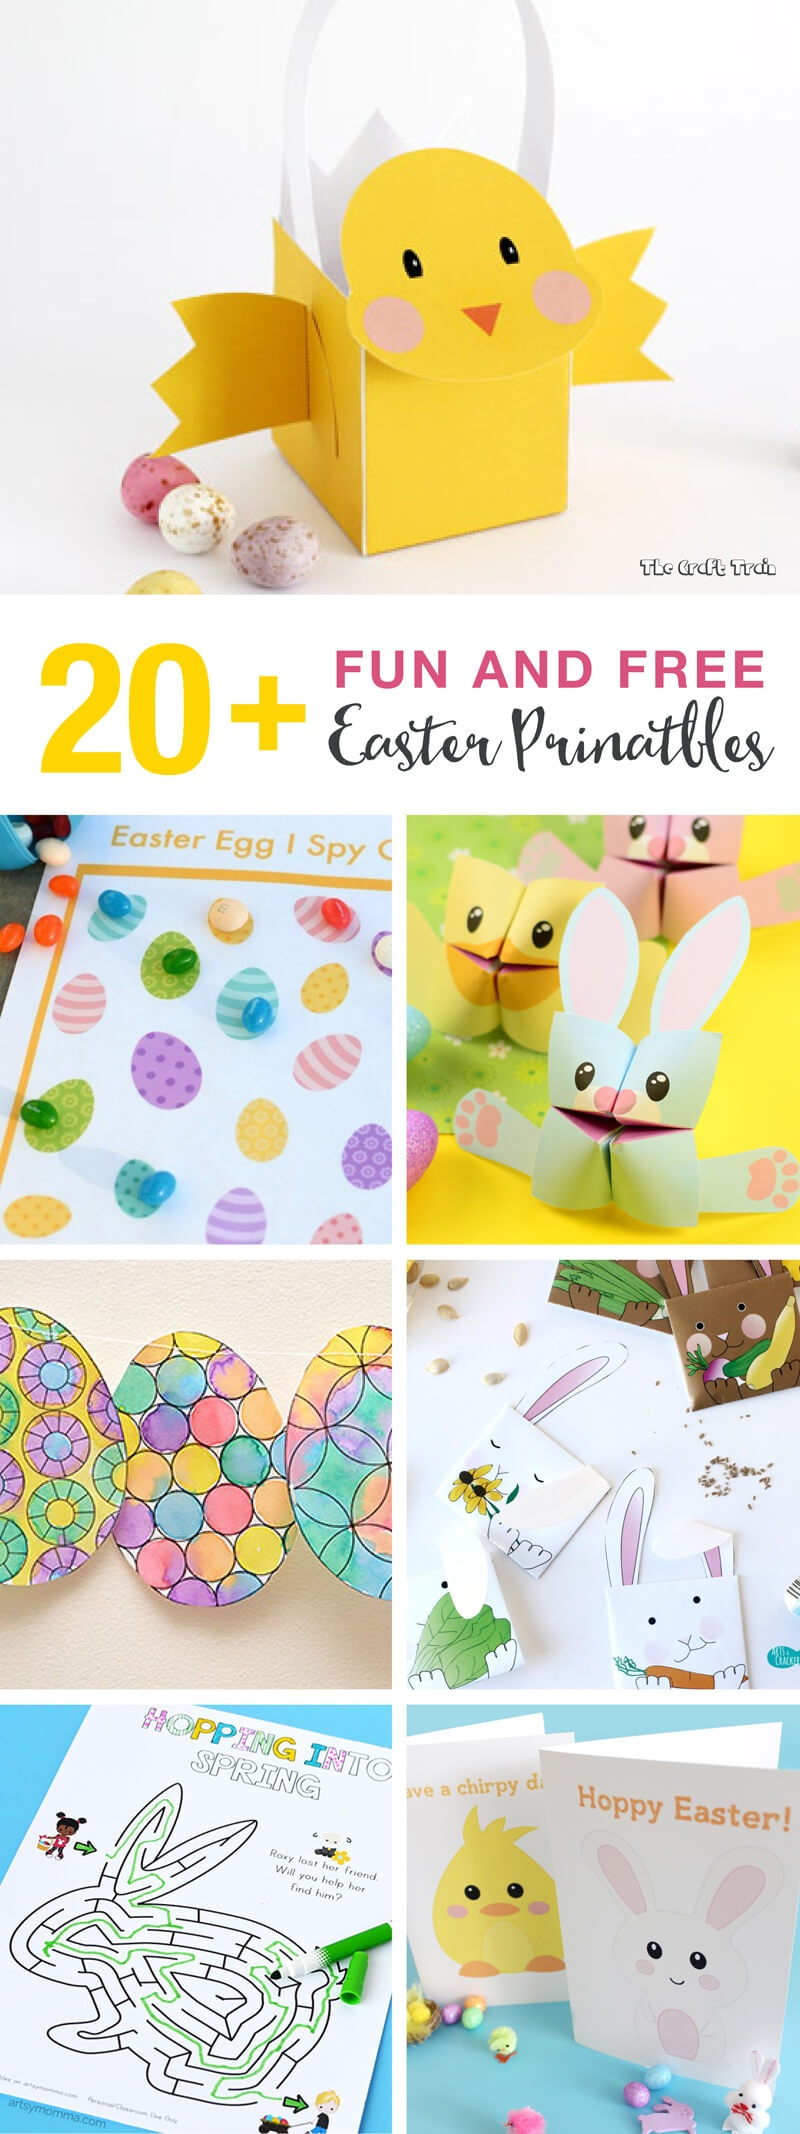 20+ Fun And Free Easter Printables For Kids | The Craft Train - Free Printable Craft Activities